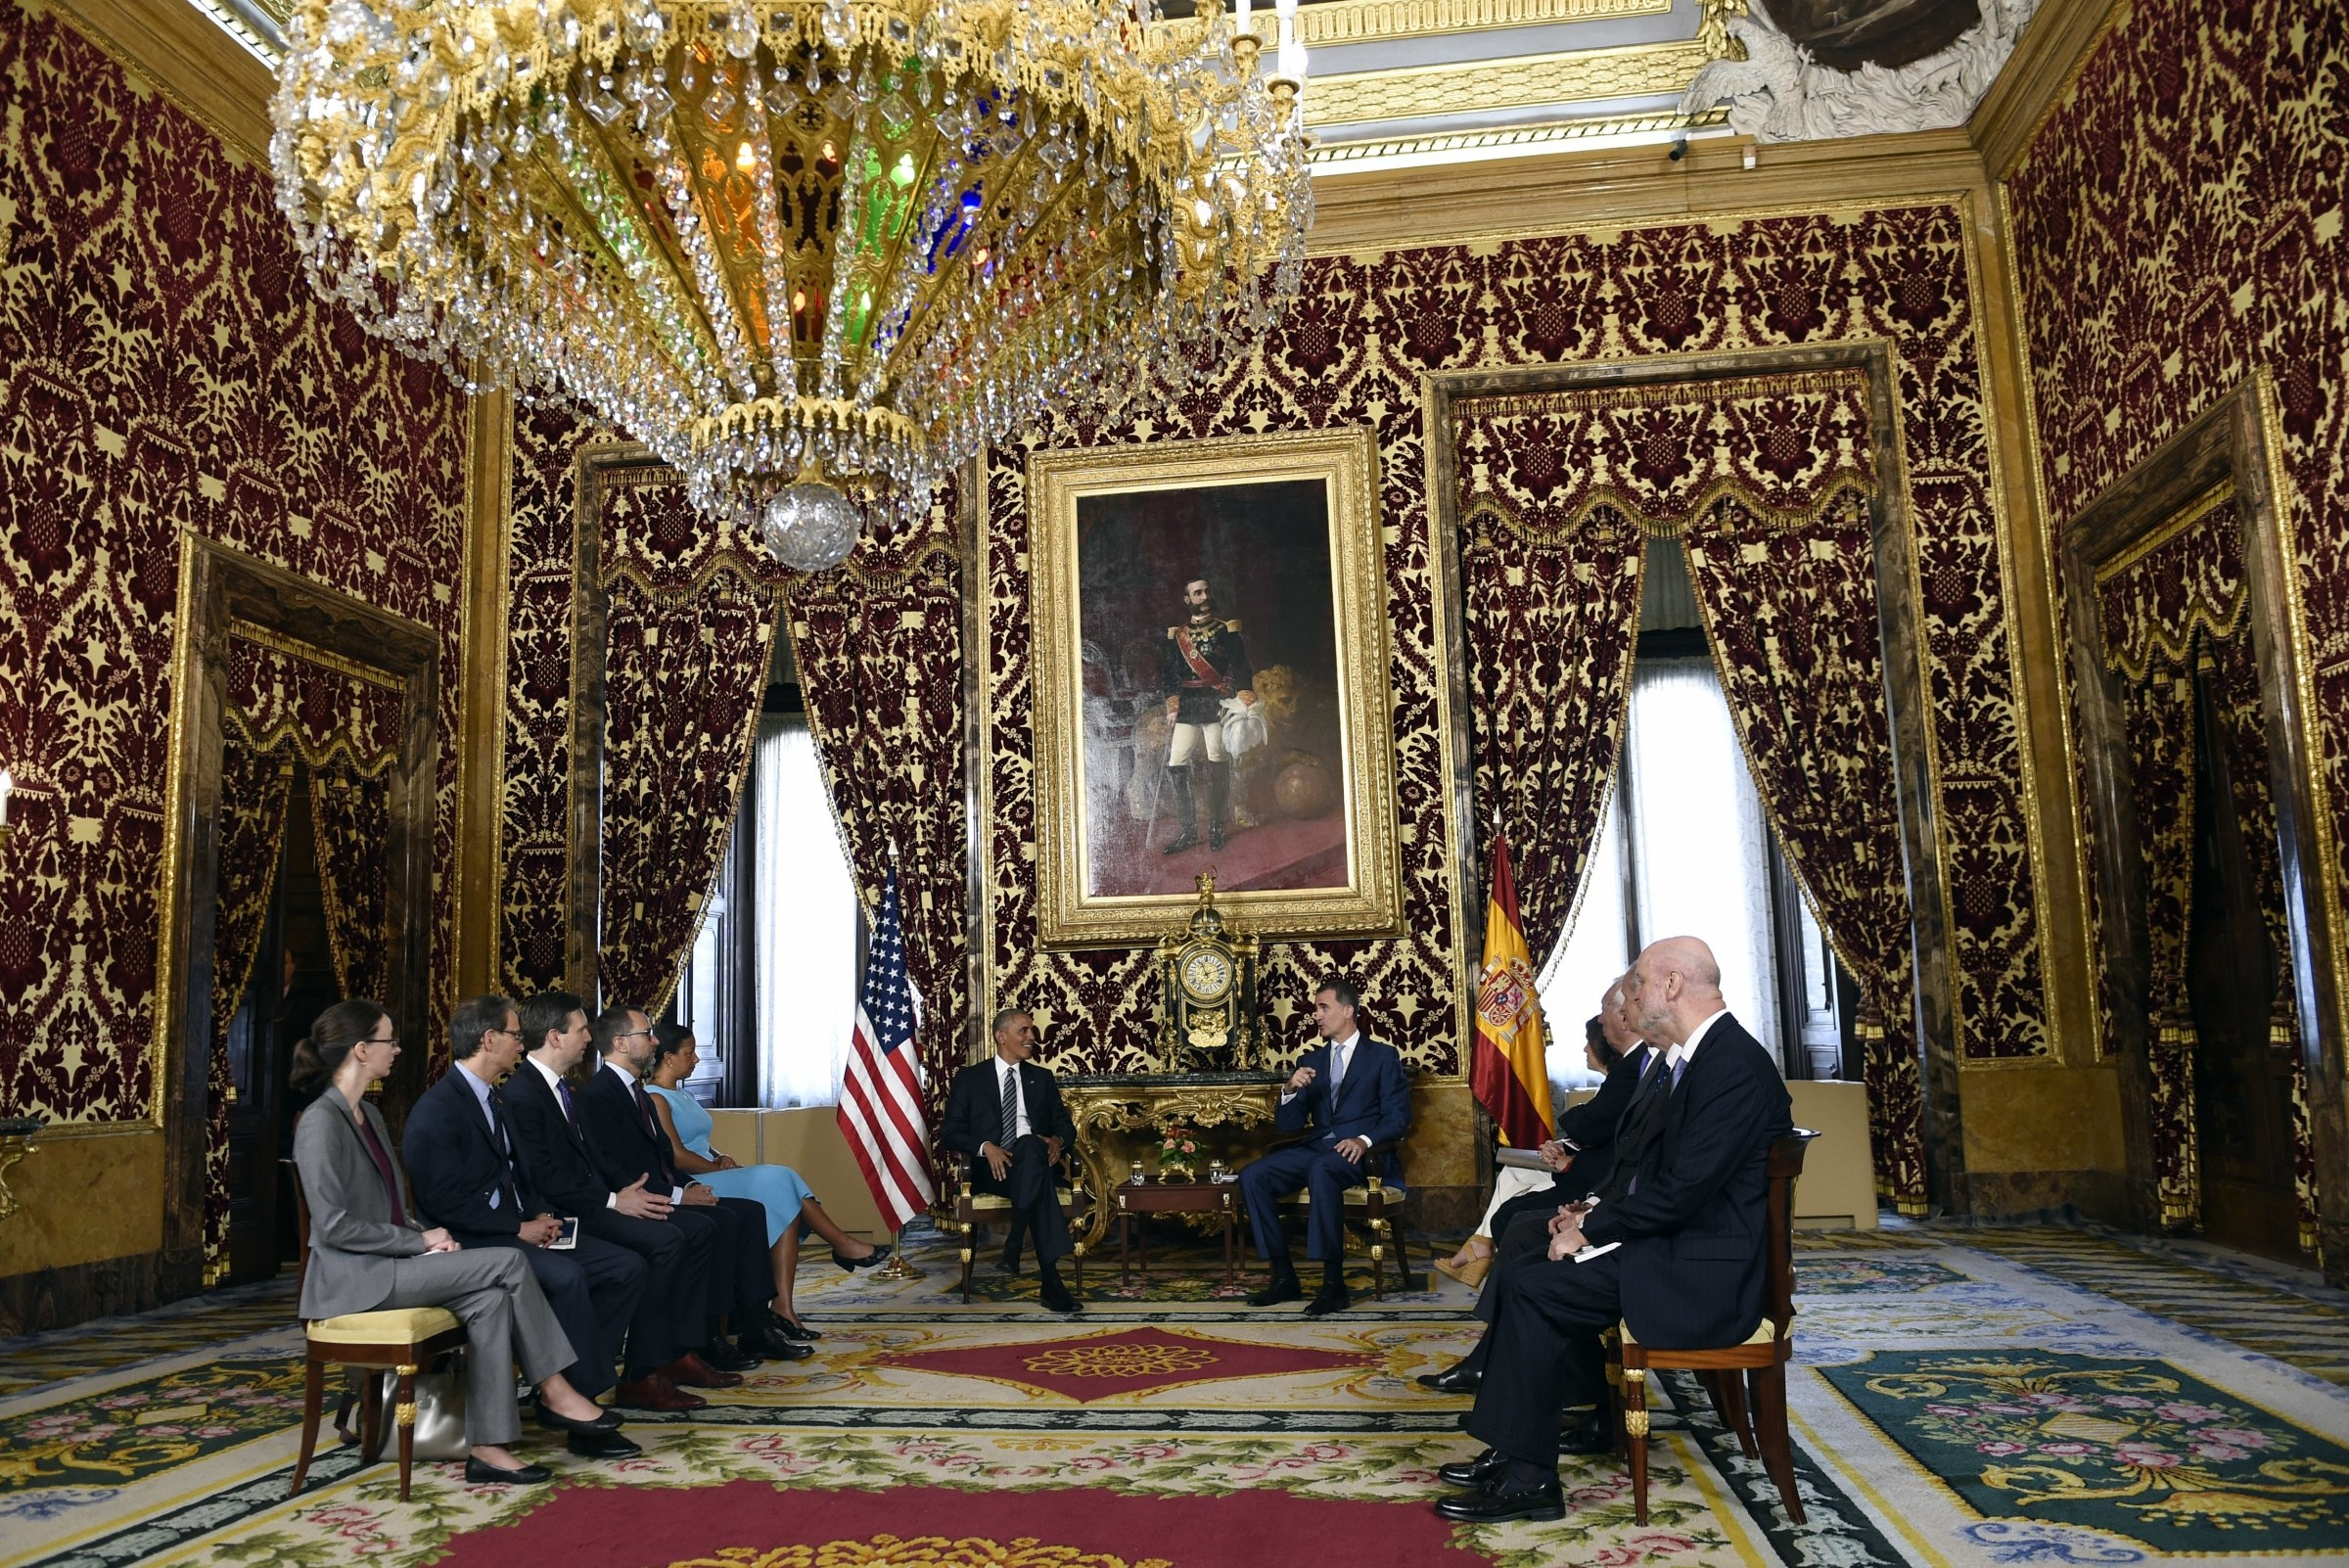 Massive Chandelier Hanging Above Obama And The King Of Spain Regarding Massive Chandelier (#7 of 12)